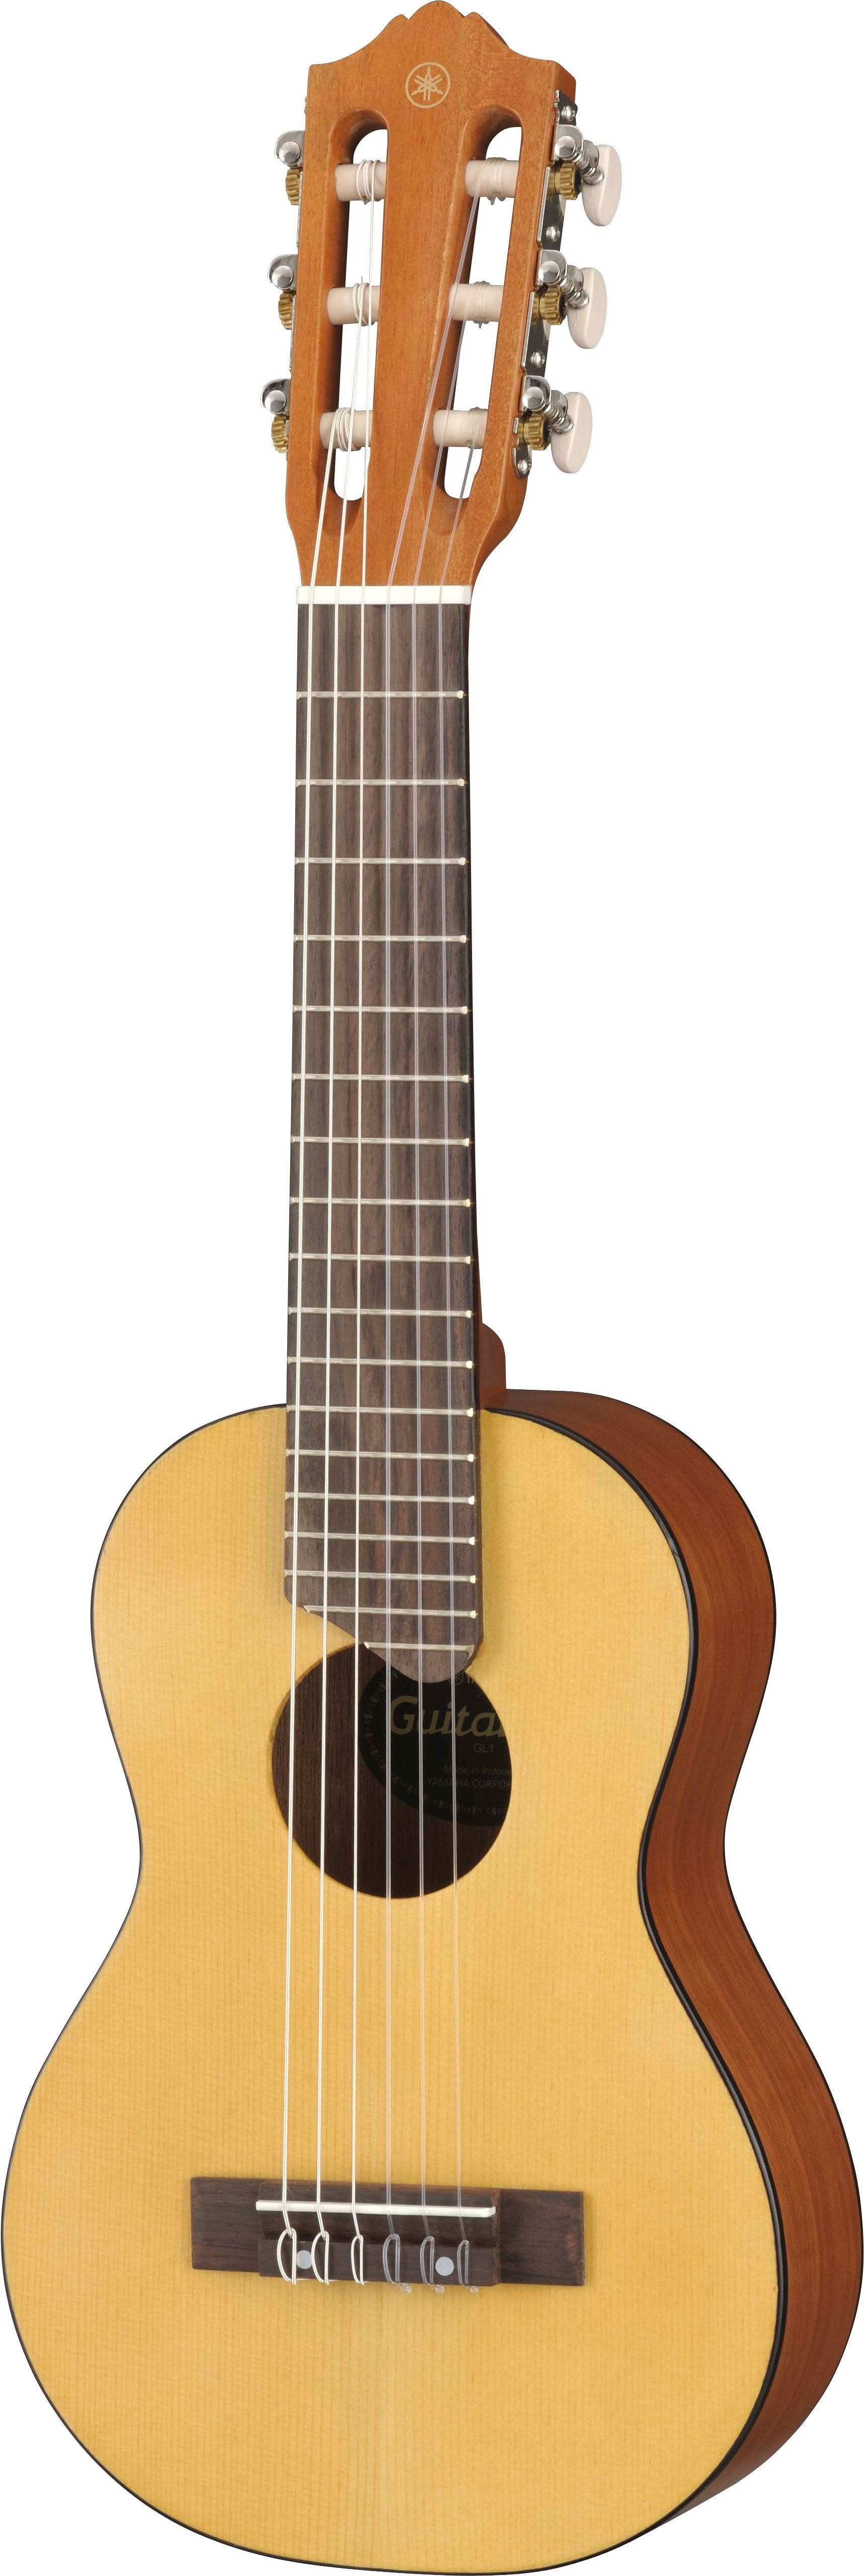 Yamaha GL1 Guitalele - Natural